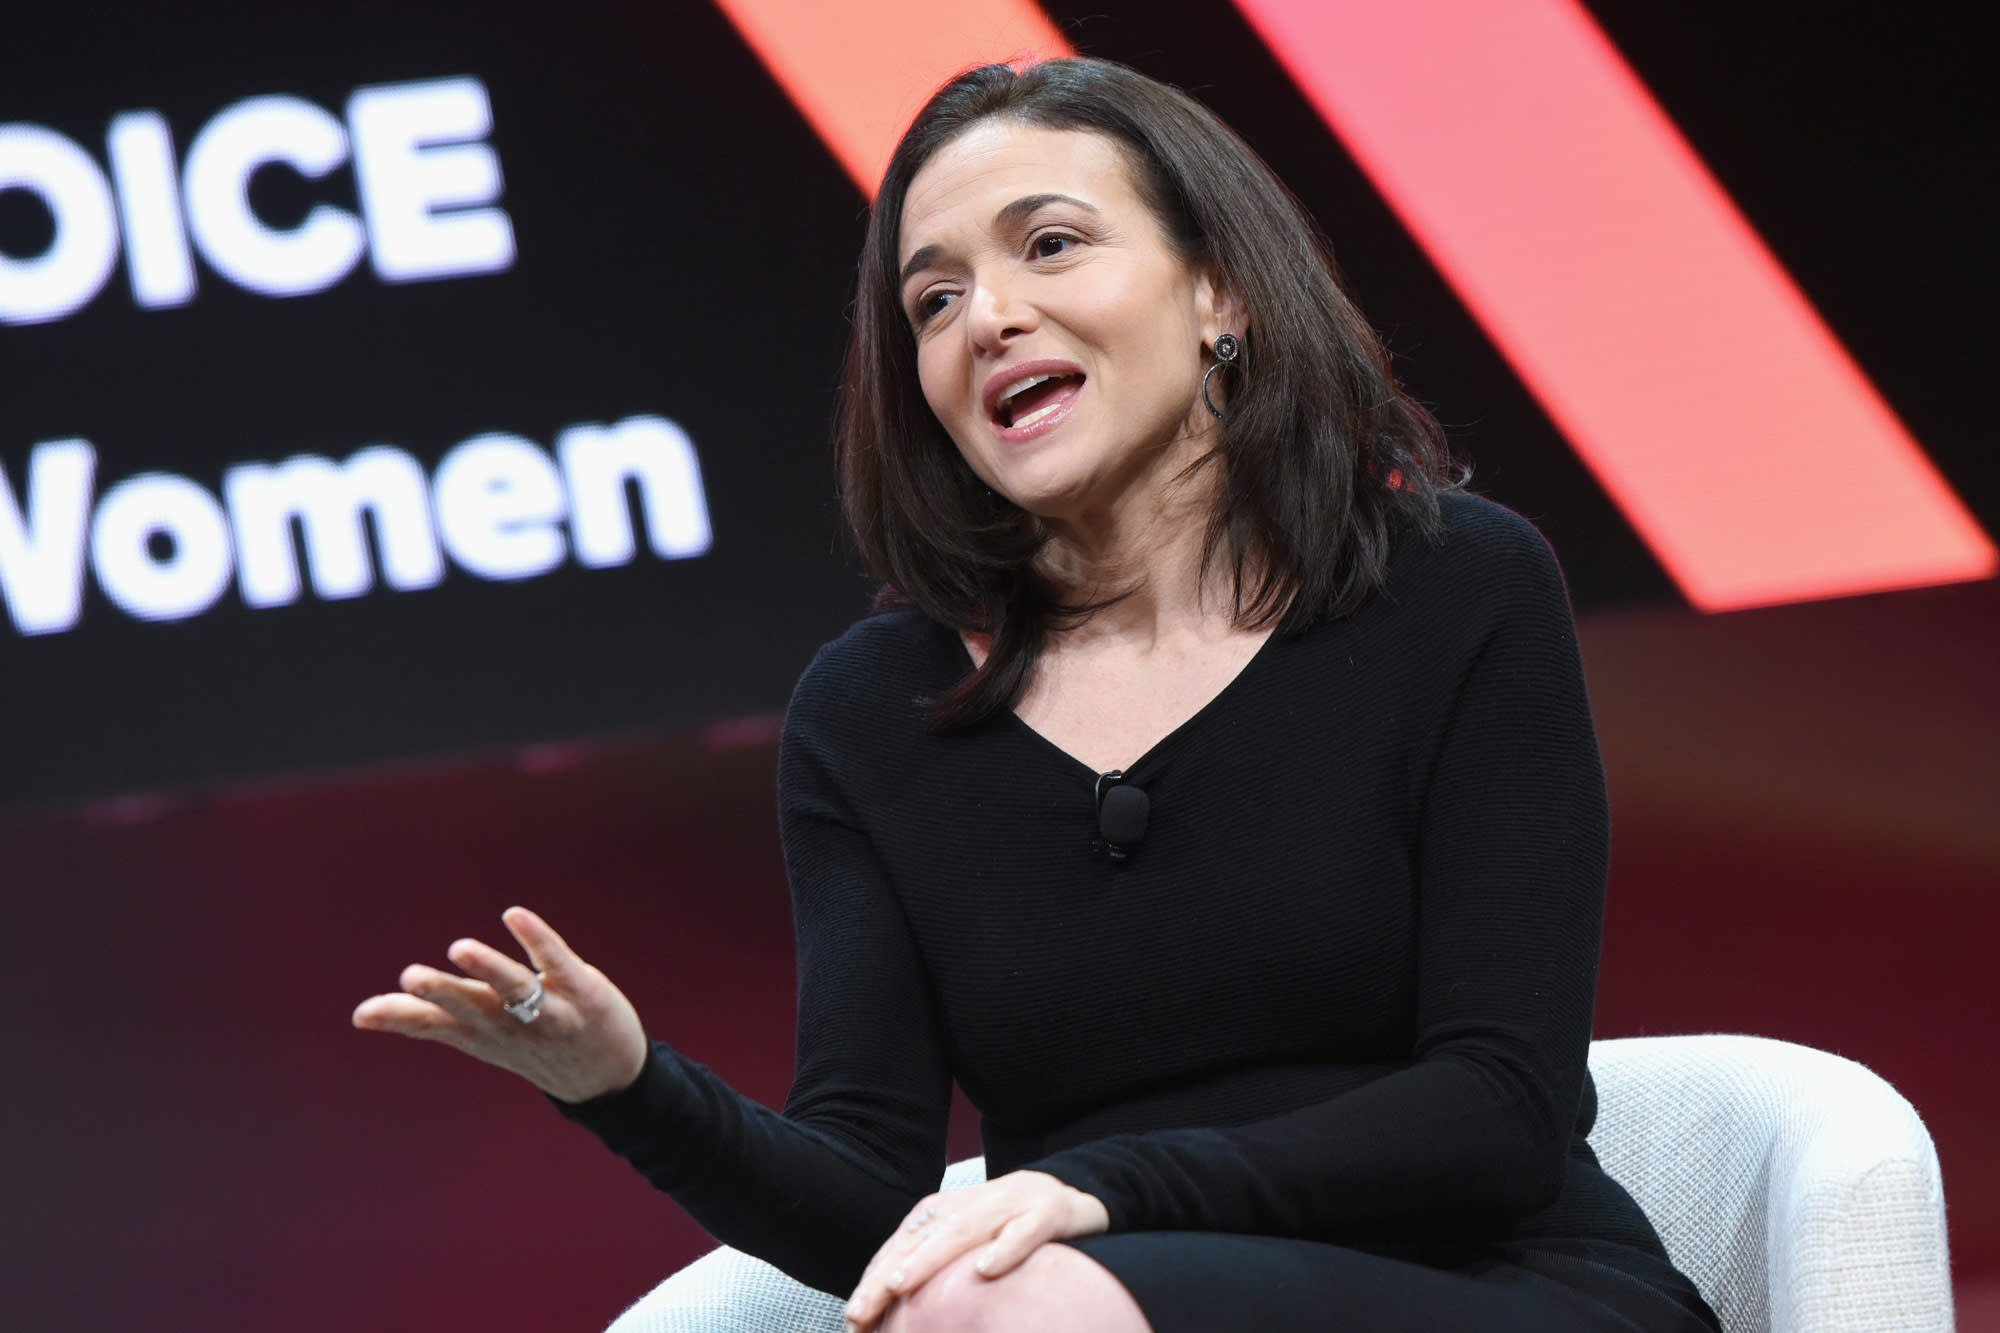 Women managers boost meritocracy and not favoritism in companies